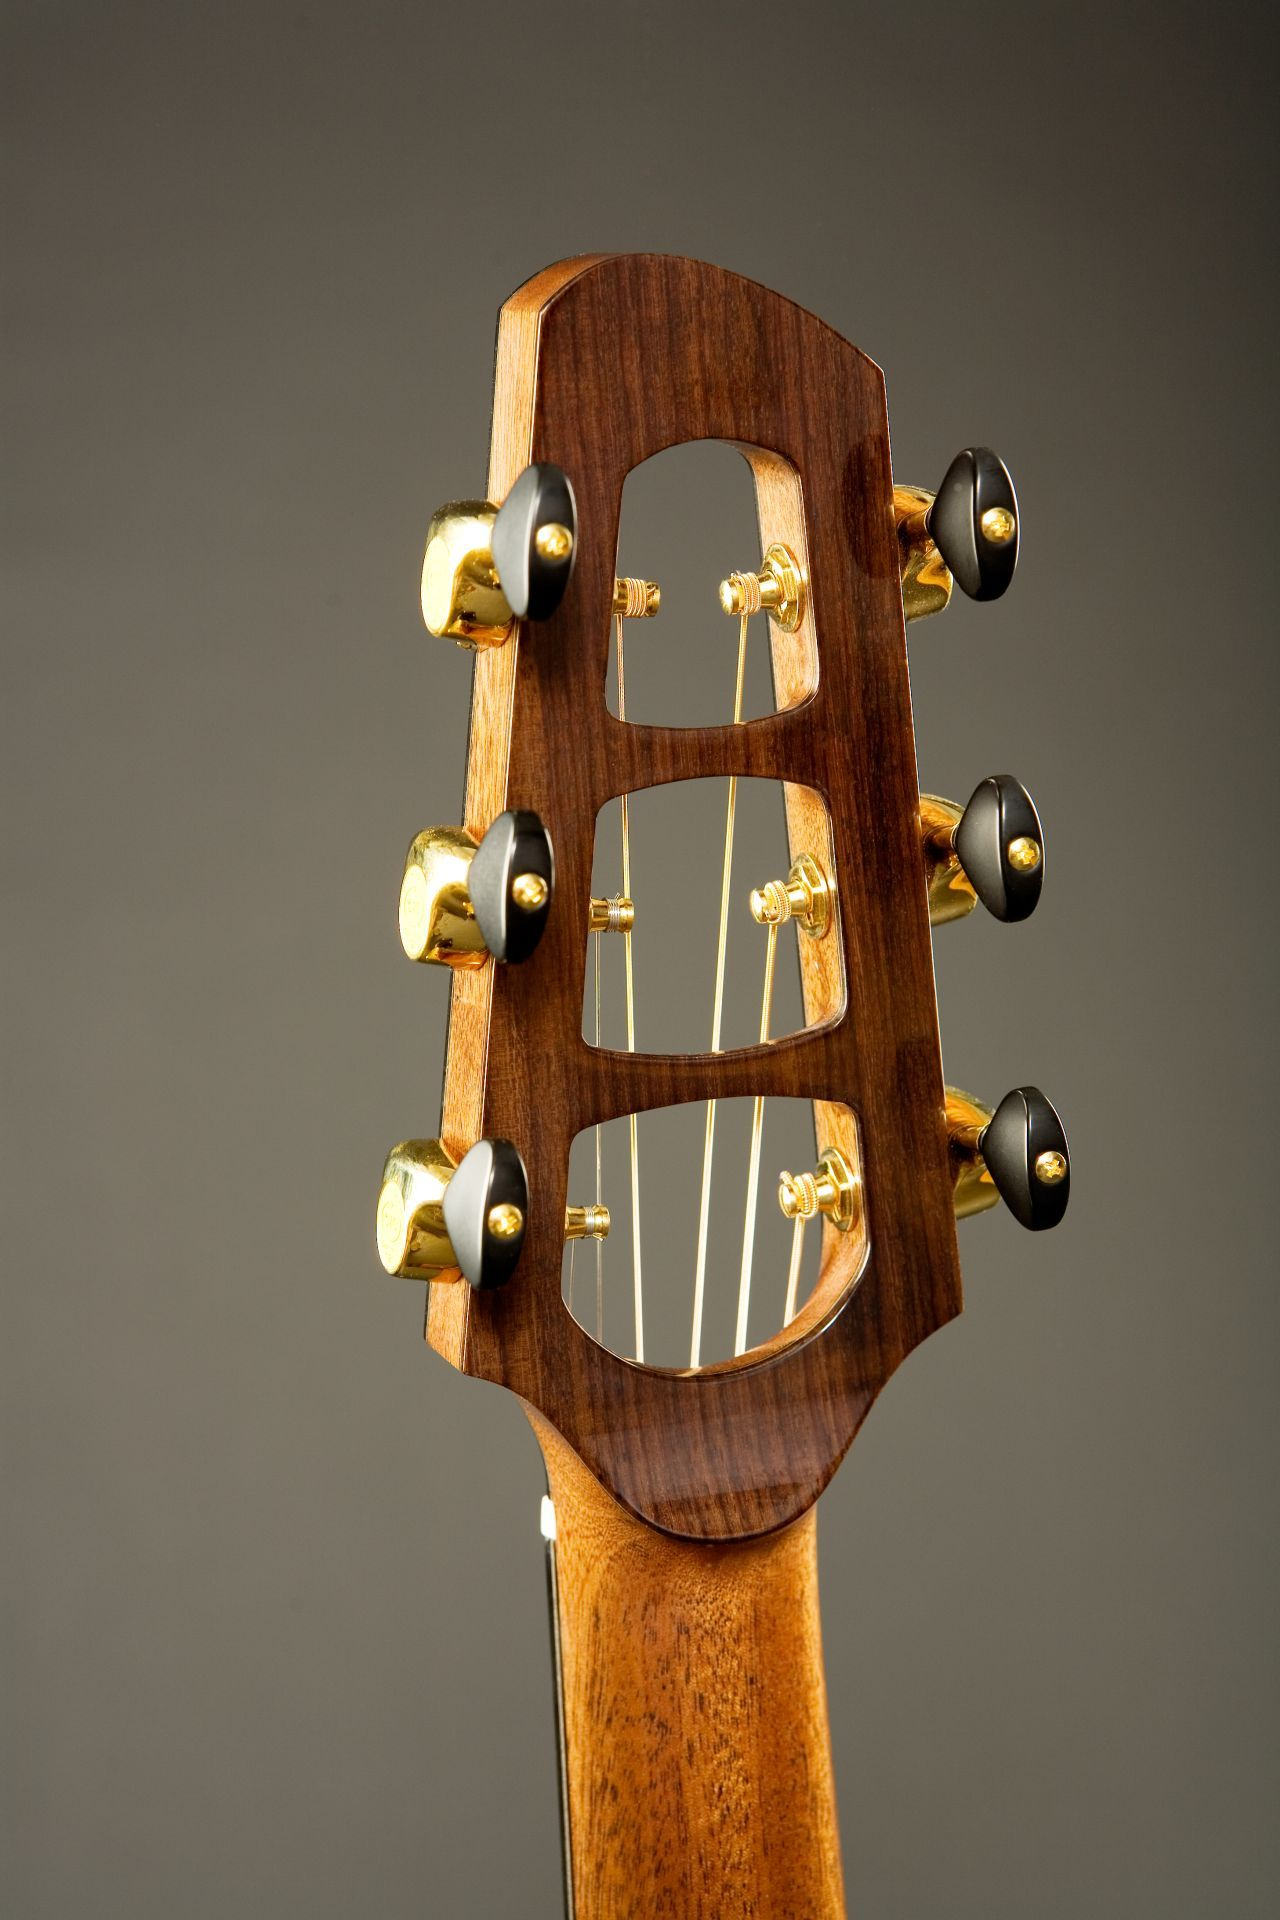 acoustic guitar headstock designs submited images pic 2 fly guitar ideas acoustic guitar. Black Bedroom Furniture Sets. Home Design Ideas